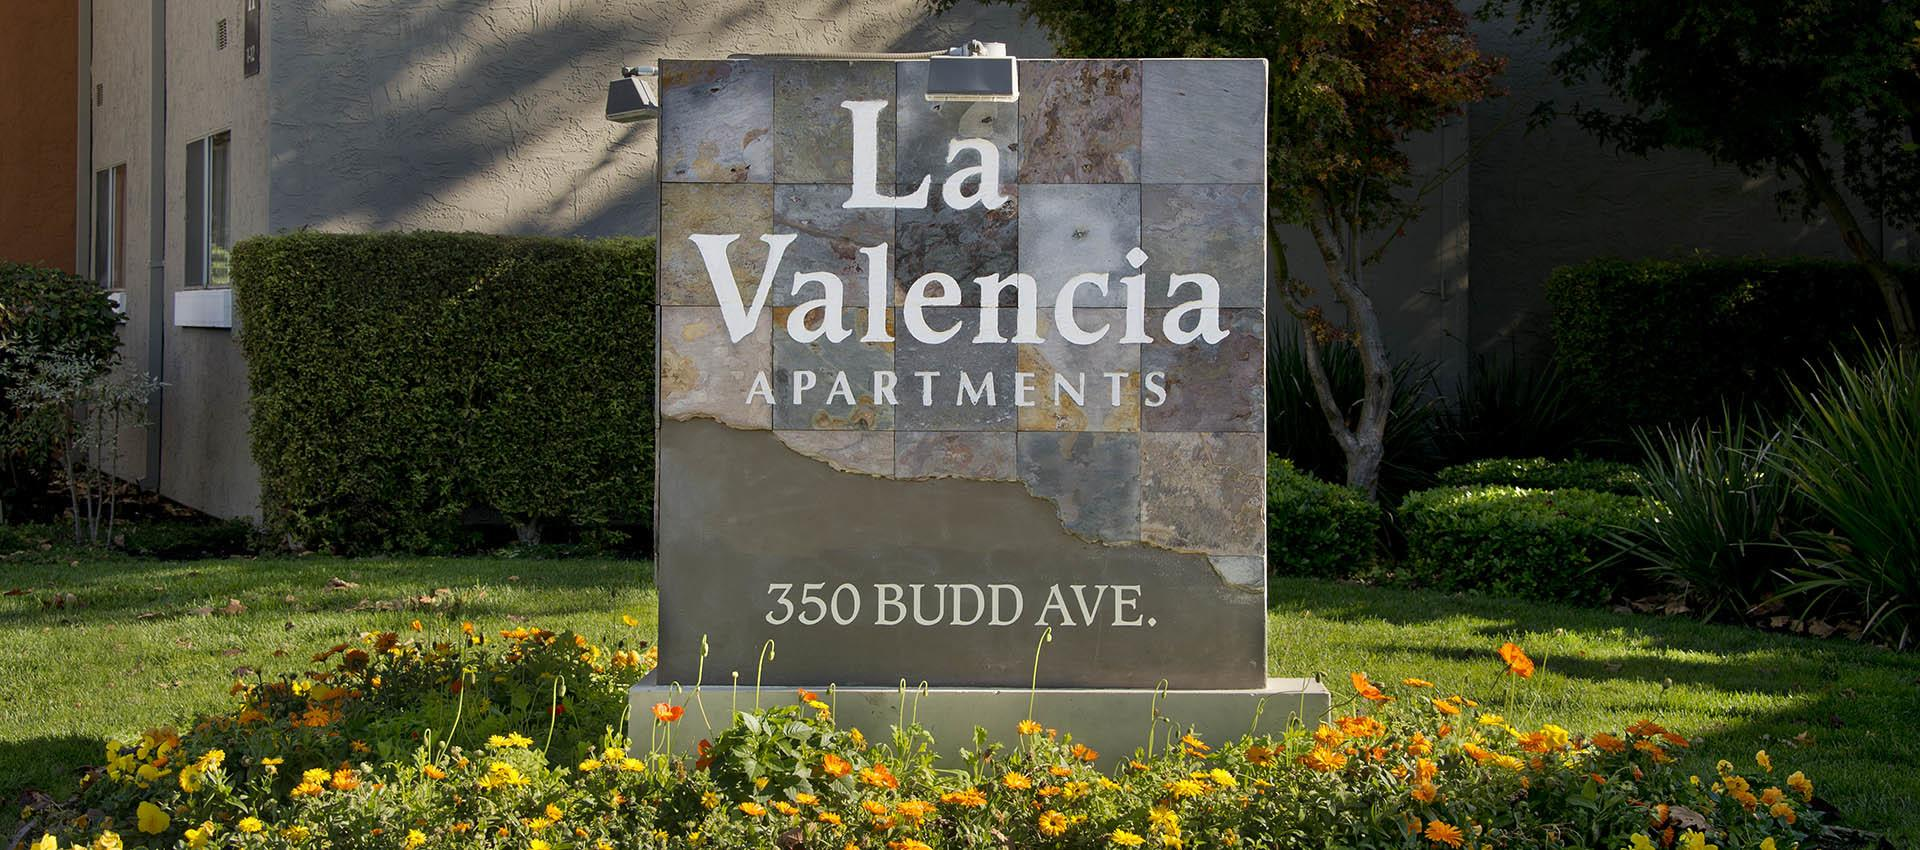 Signage at La Valencia Apartment Homes in Campbell, CA